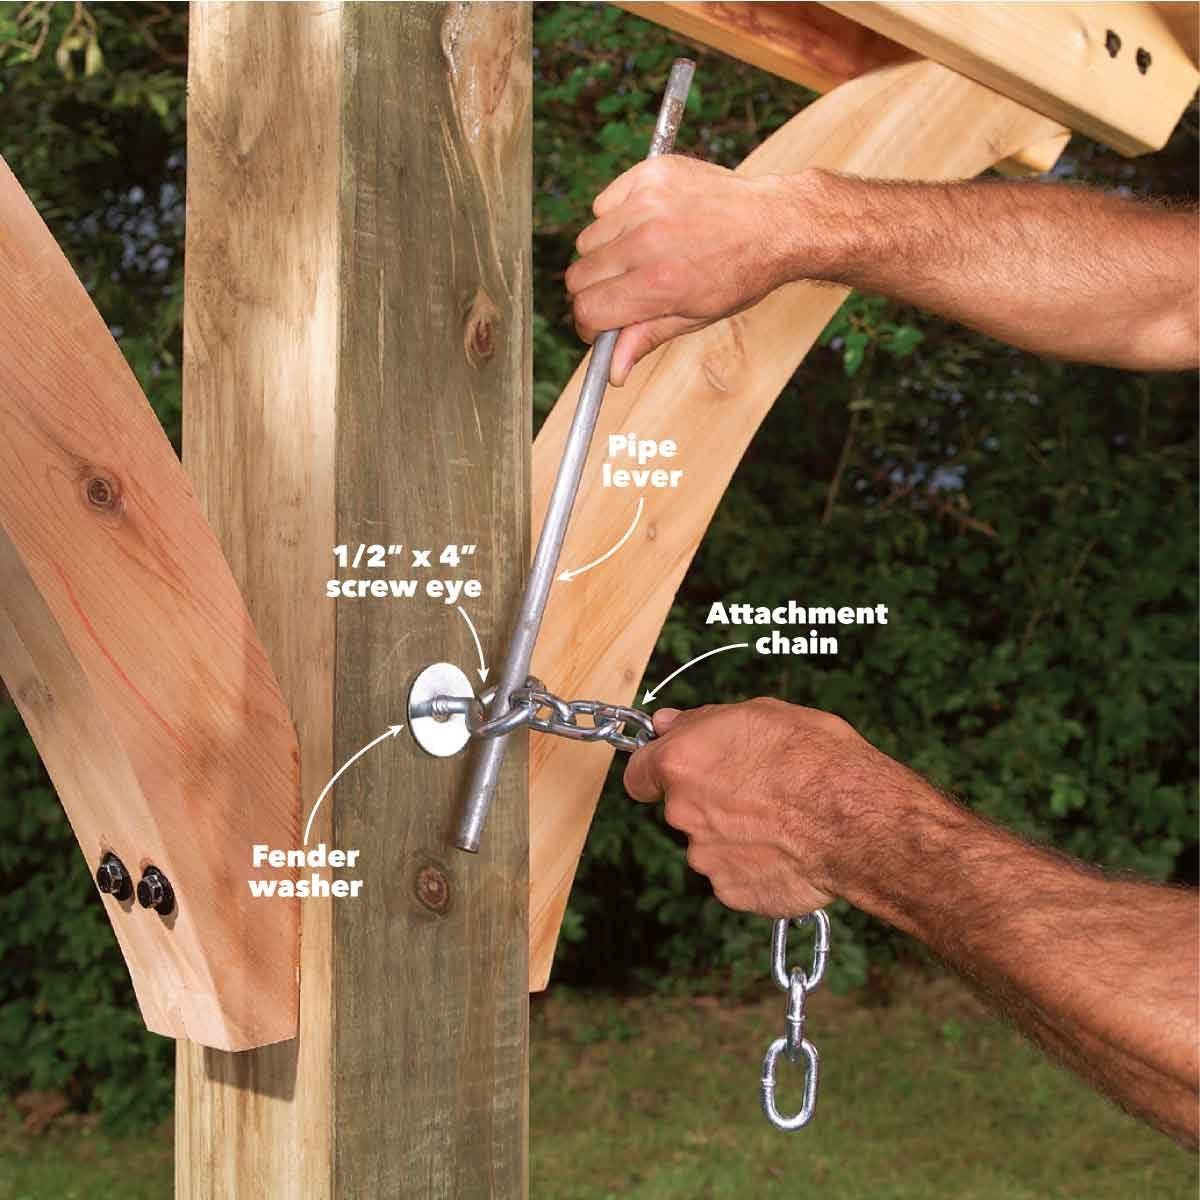 hammock awning add attachment chain